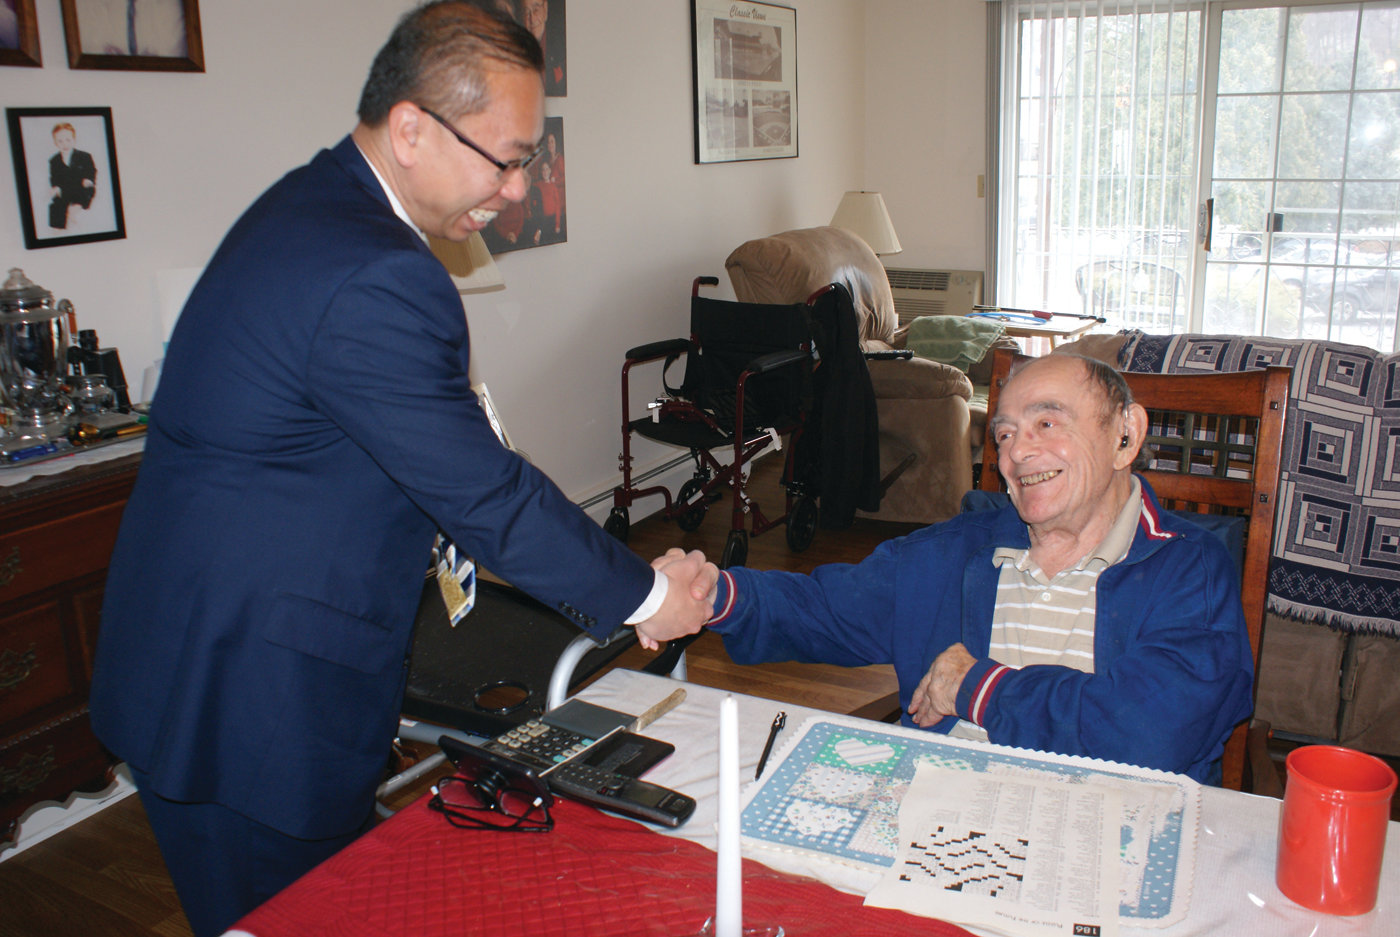 NEW FRIENDS: Vincenzo DiPippo enjoyed a conversation with Mayor Allan Fung during the Meals on Wheels visit.